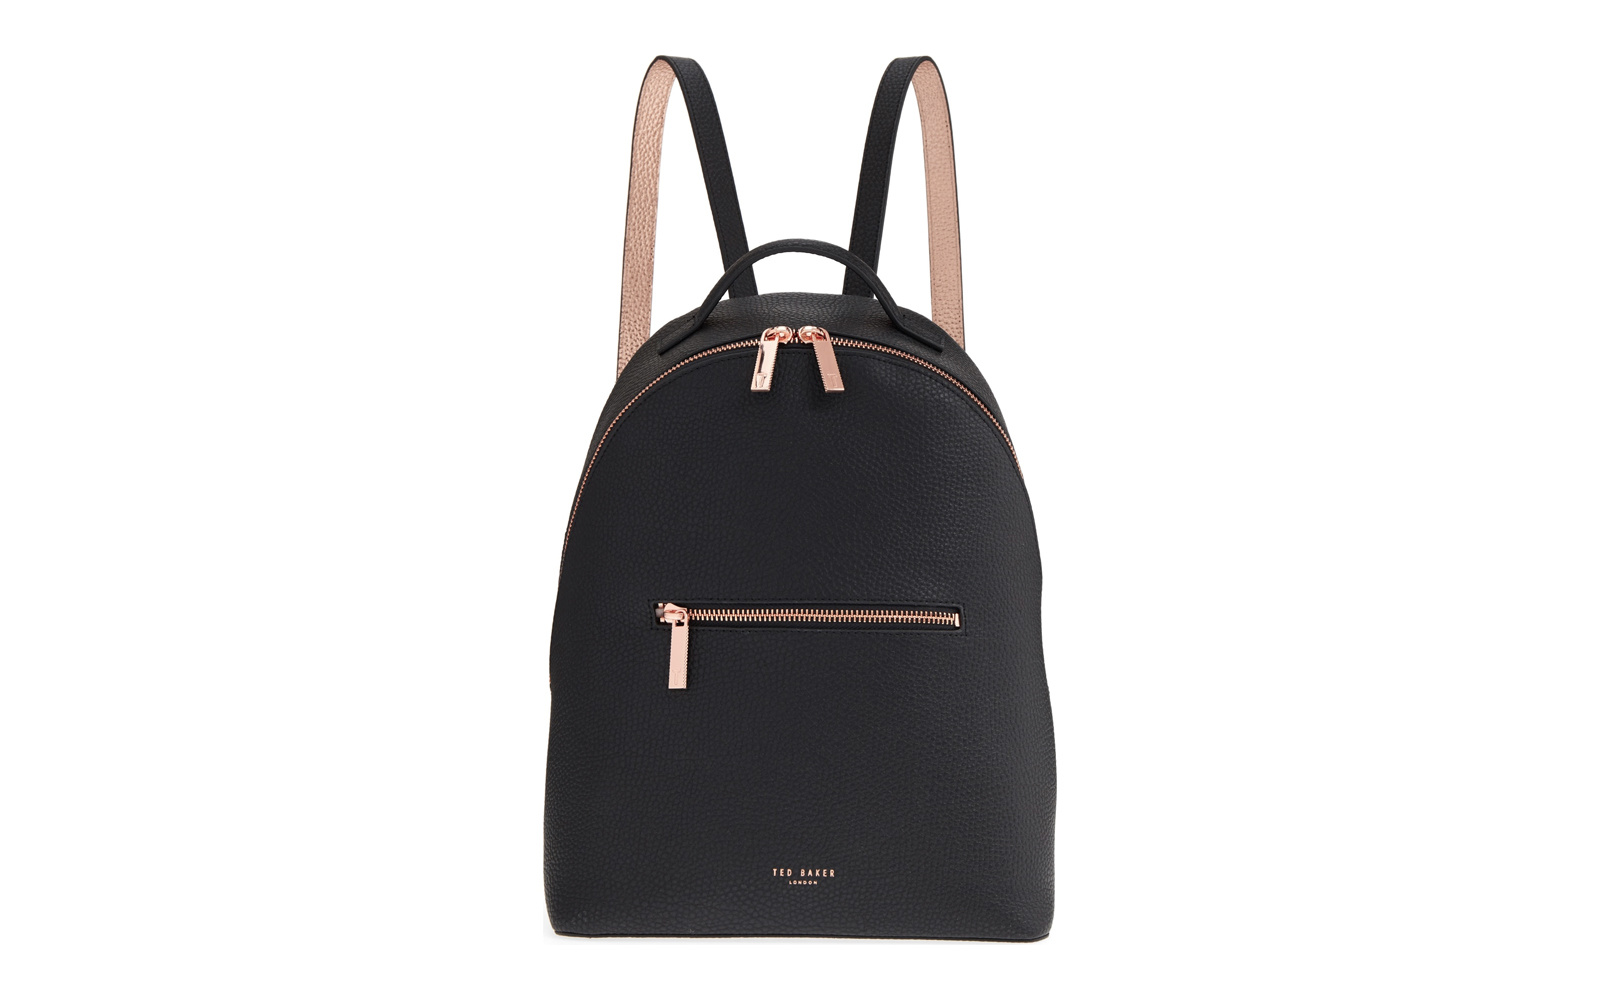 Stylish Backpacks on Sale at Nordstrom